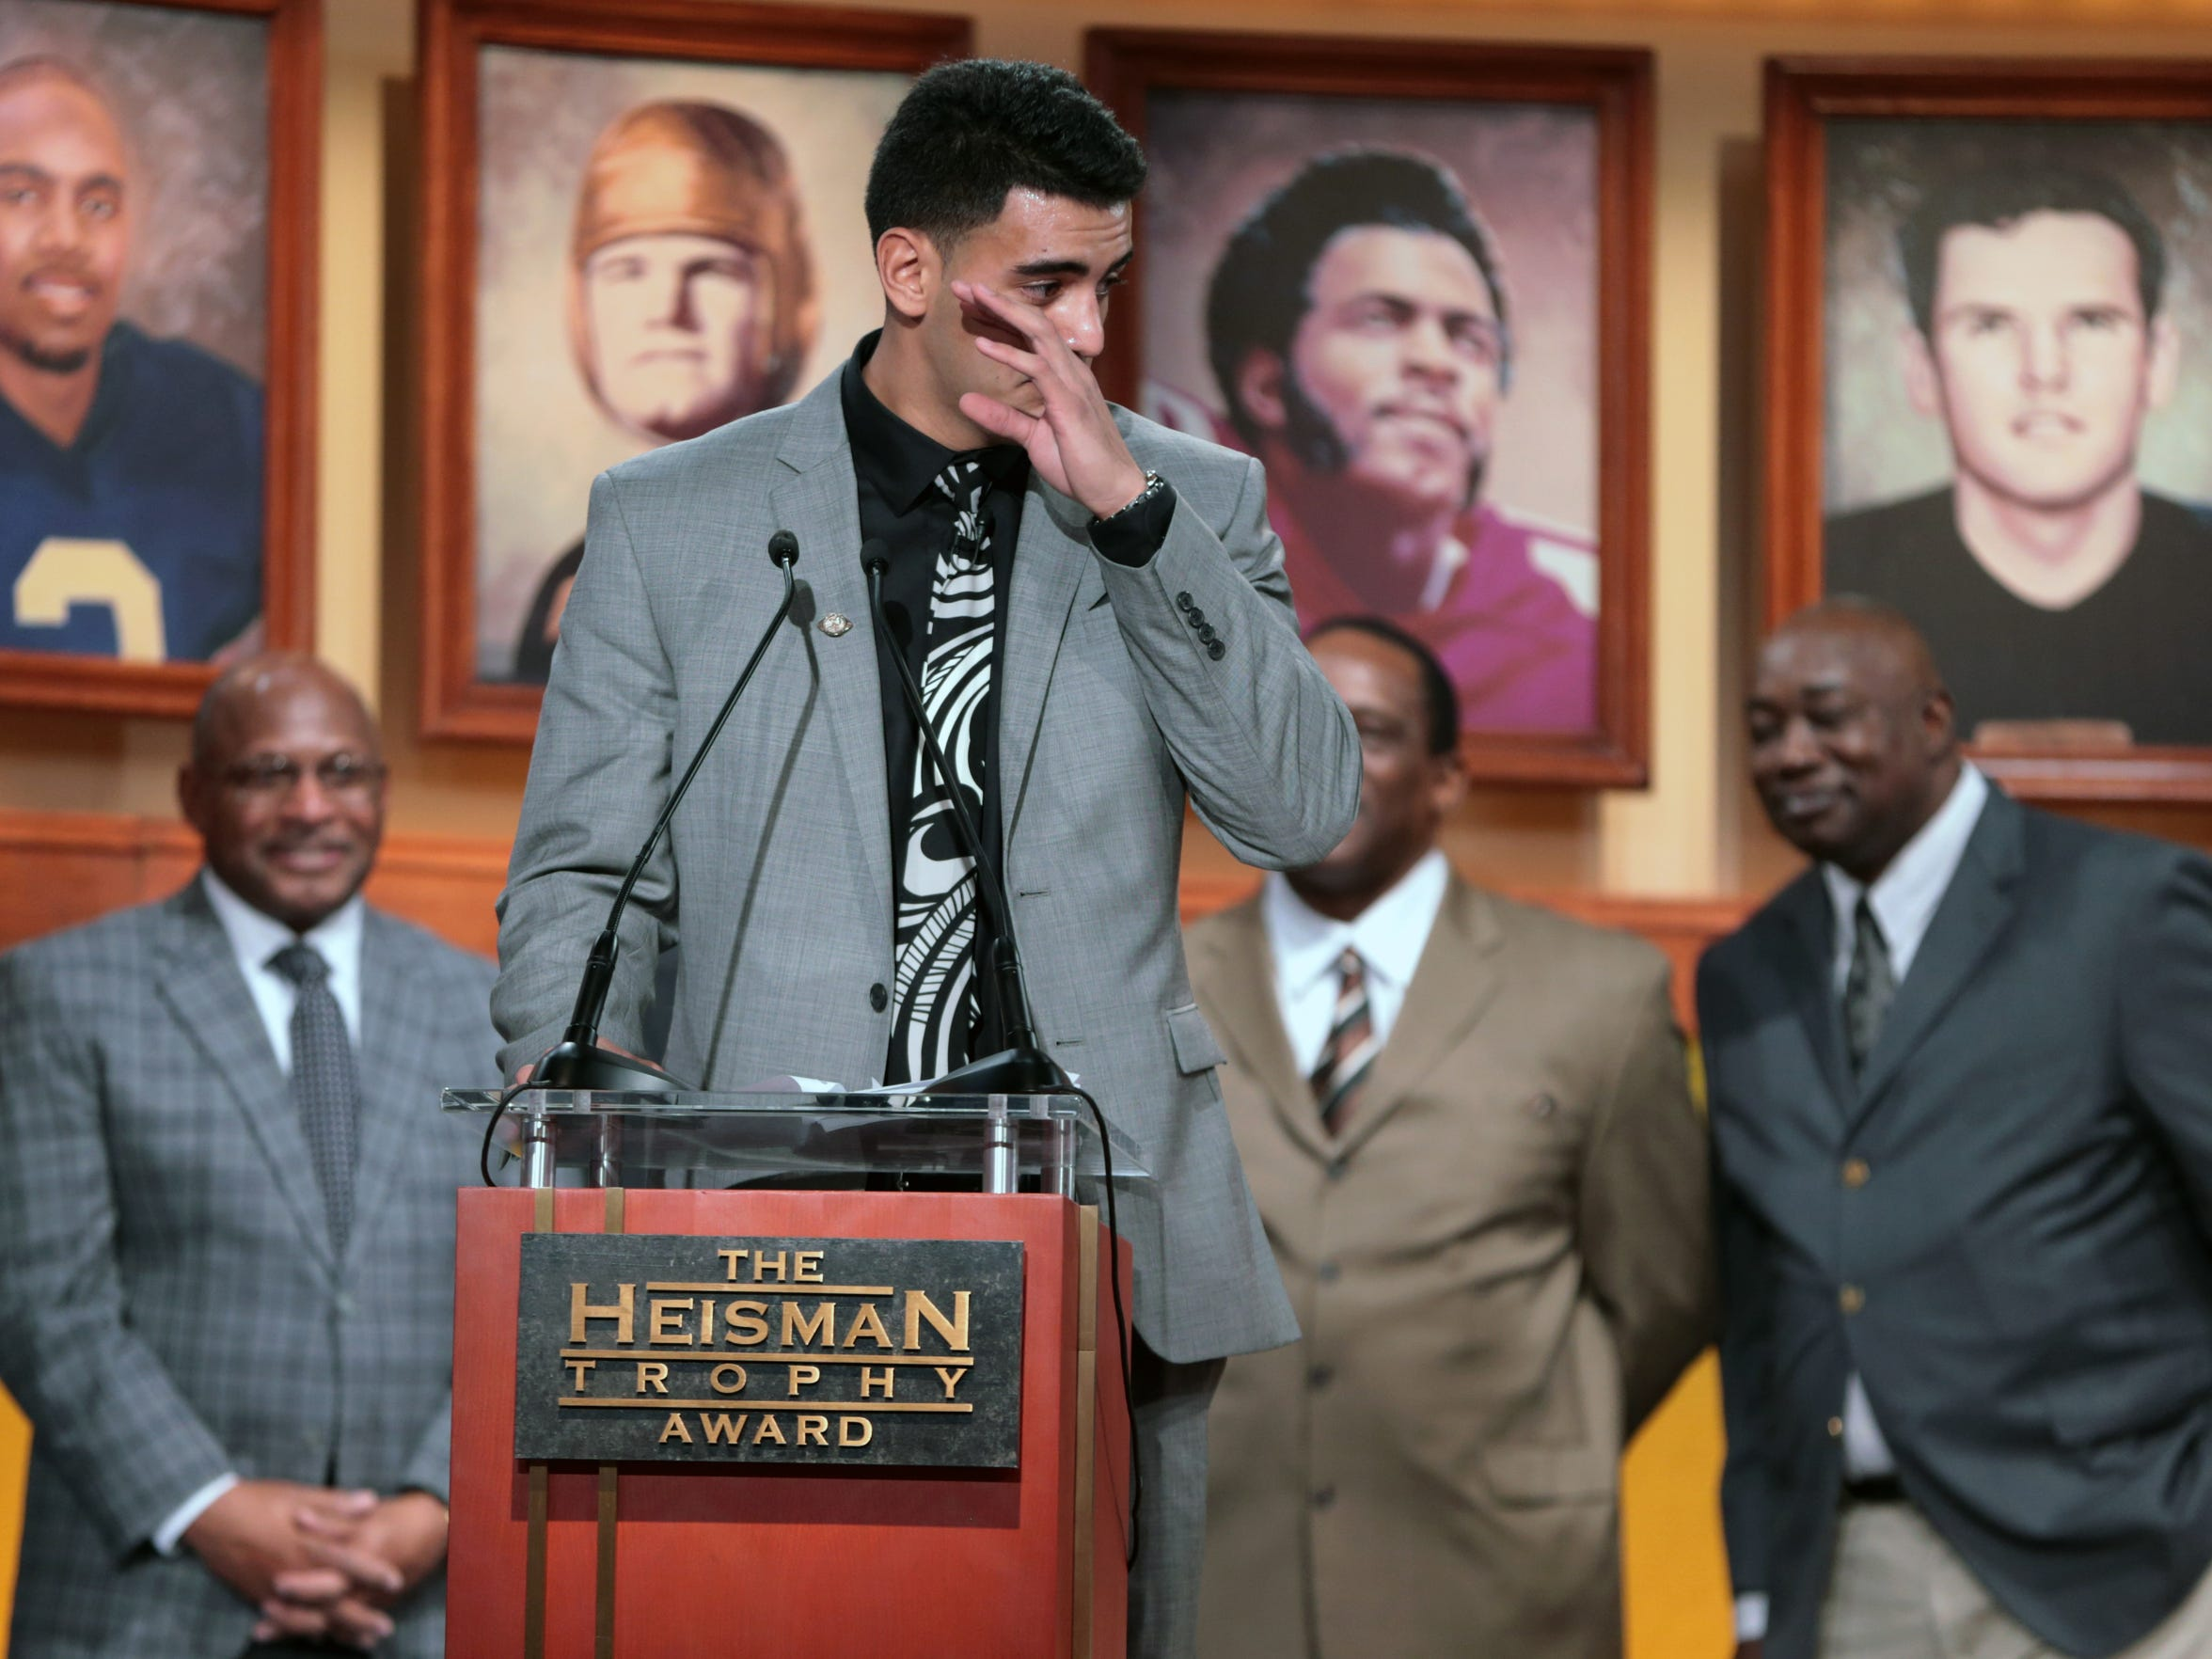 Oregon quarterback Marcus Mariota tears up while speaking after being named the Heisman Trophy winner on December 13, 2013 in New York.